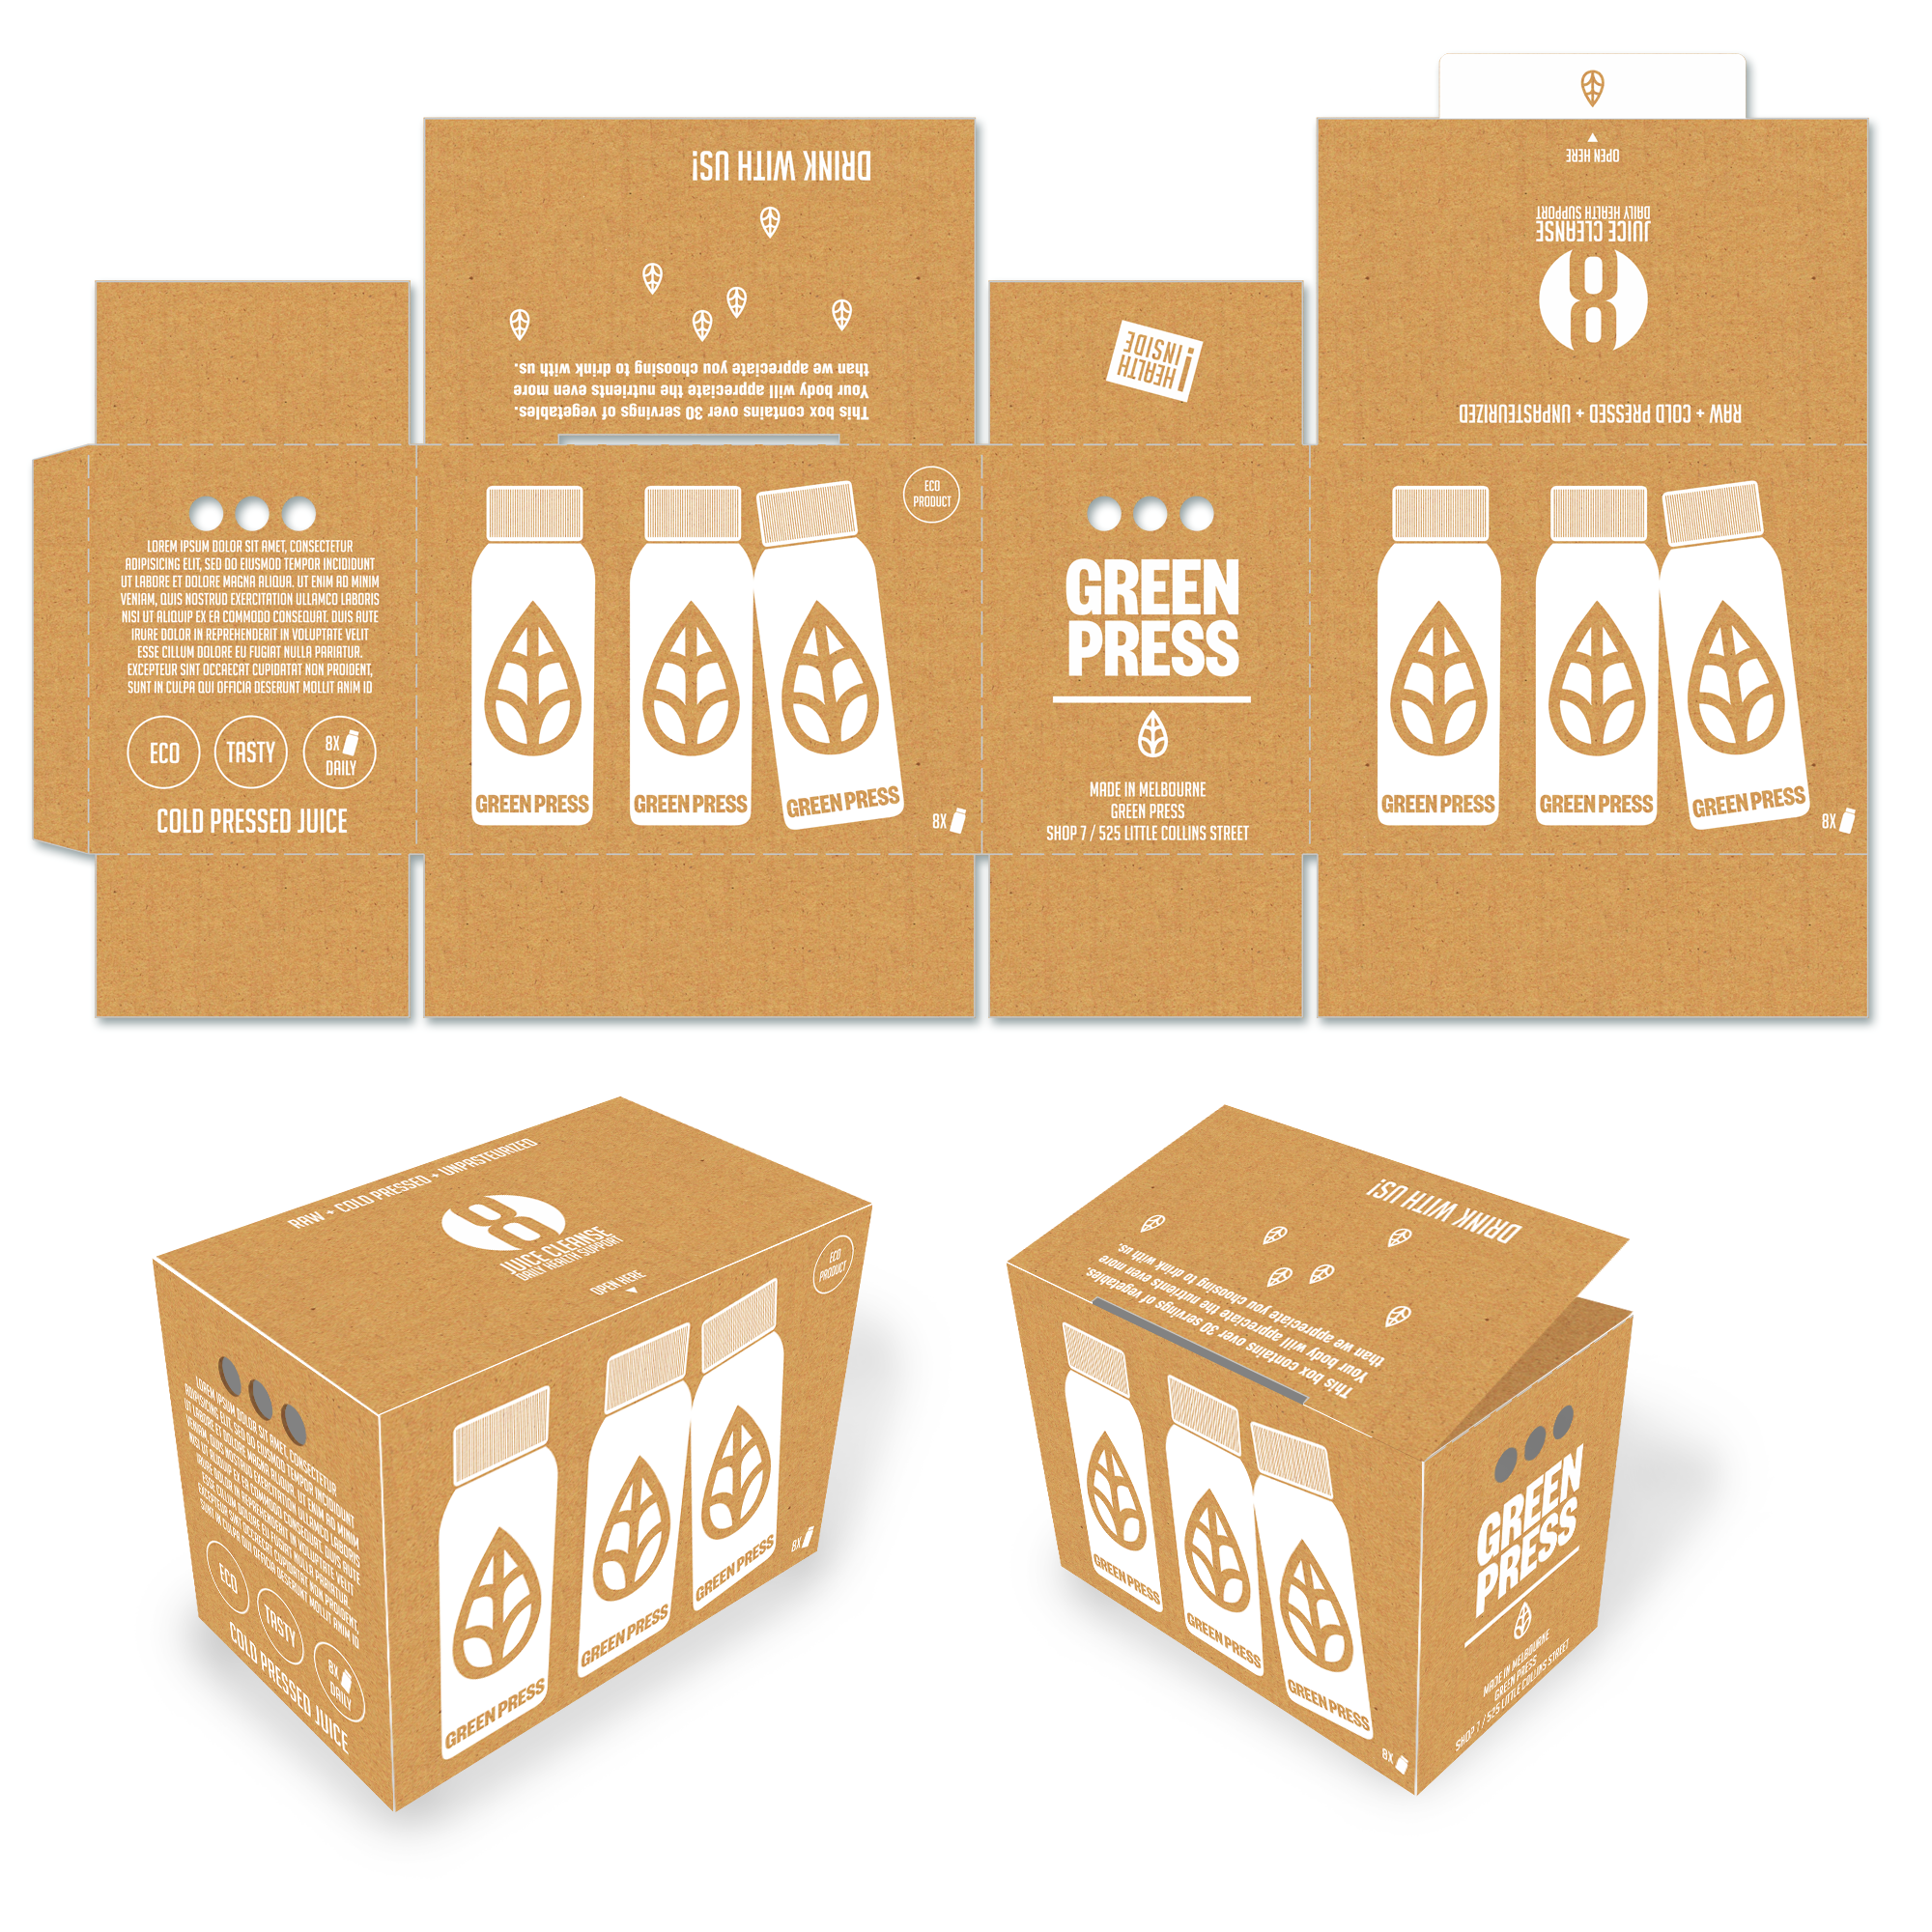 green press cardboard box package pinterest packaging design